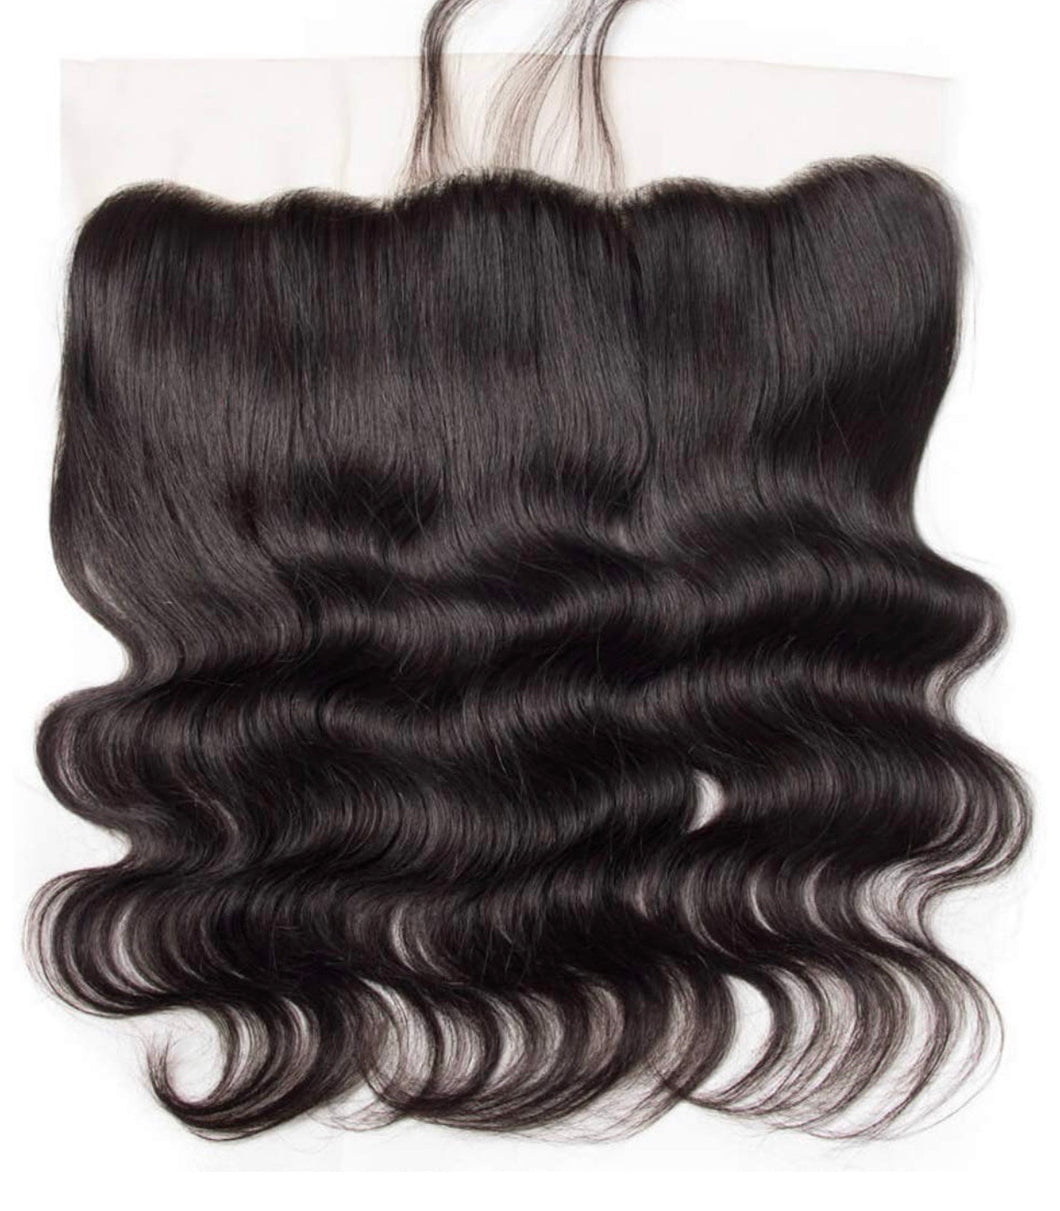 13x5 Full Lace Frontal Closure Luxury Wave 16 inch